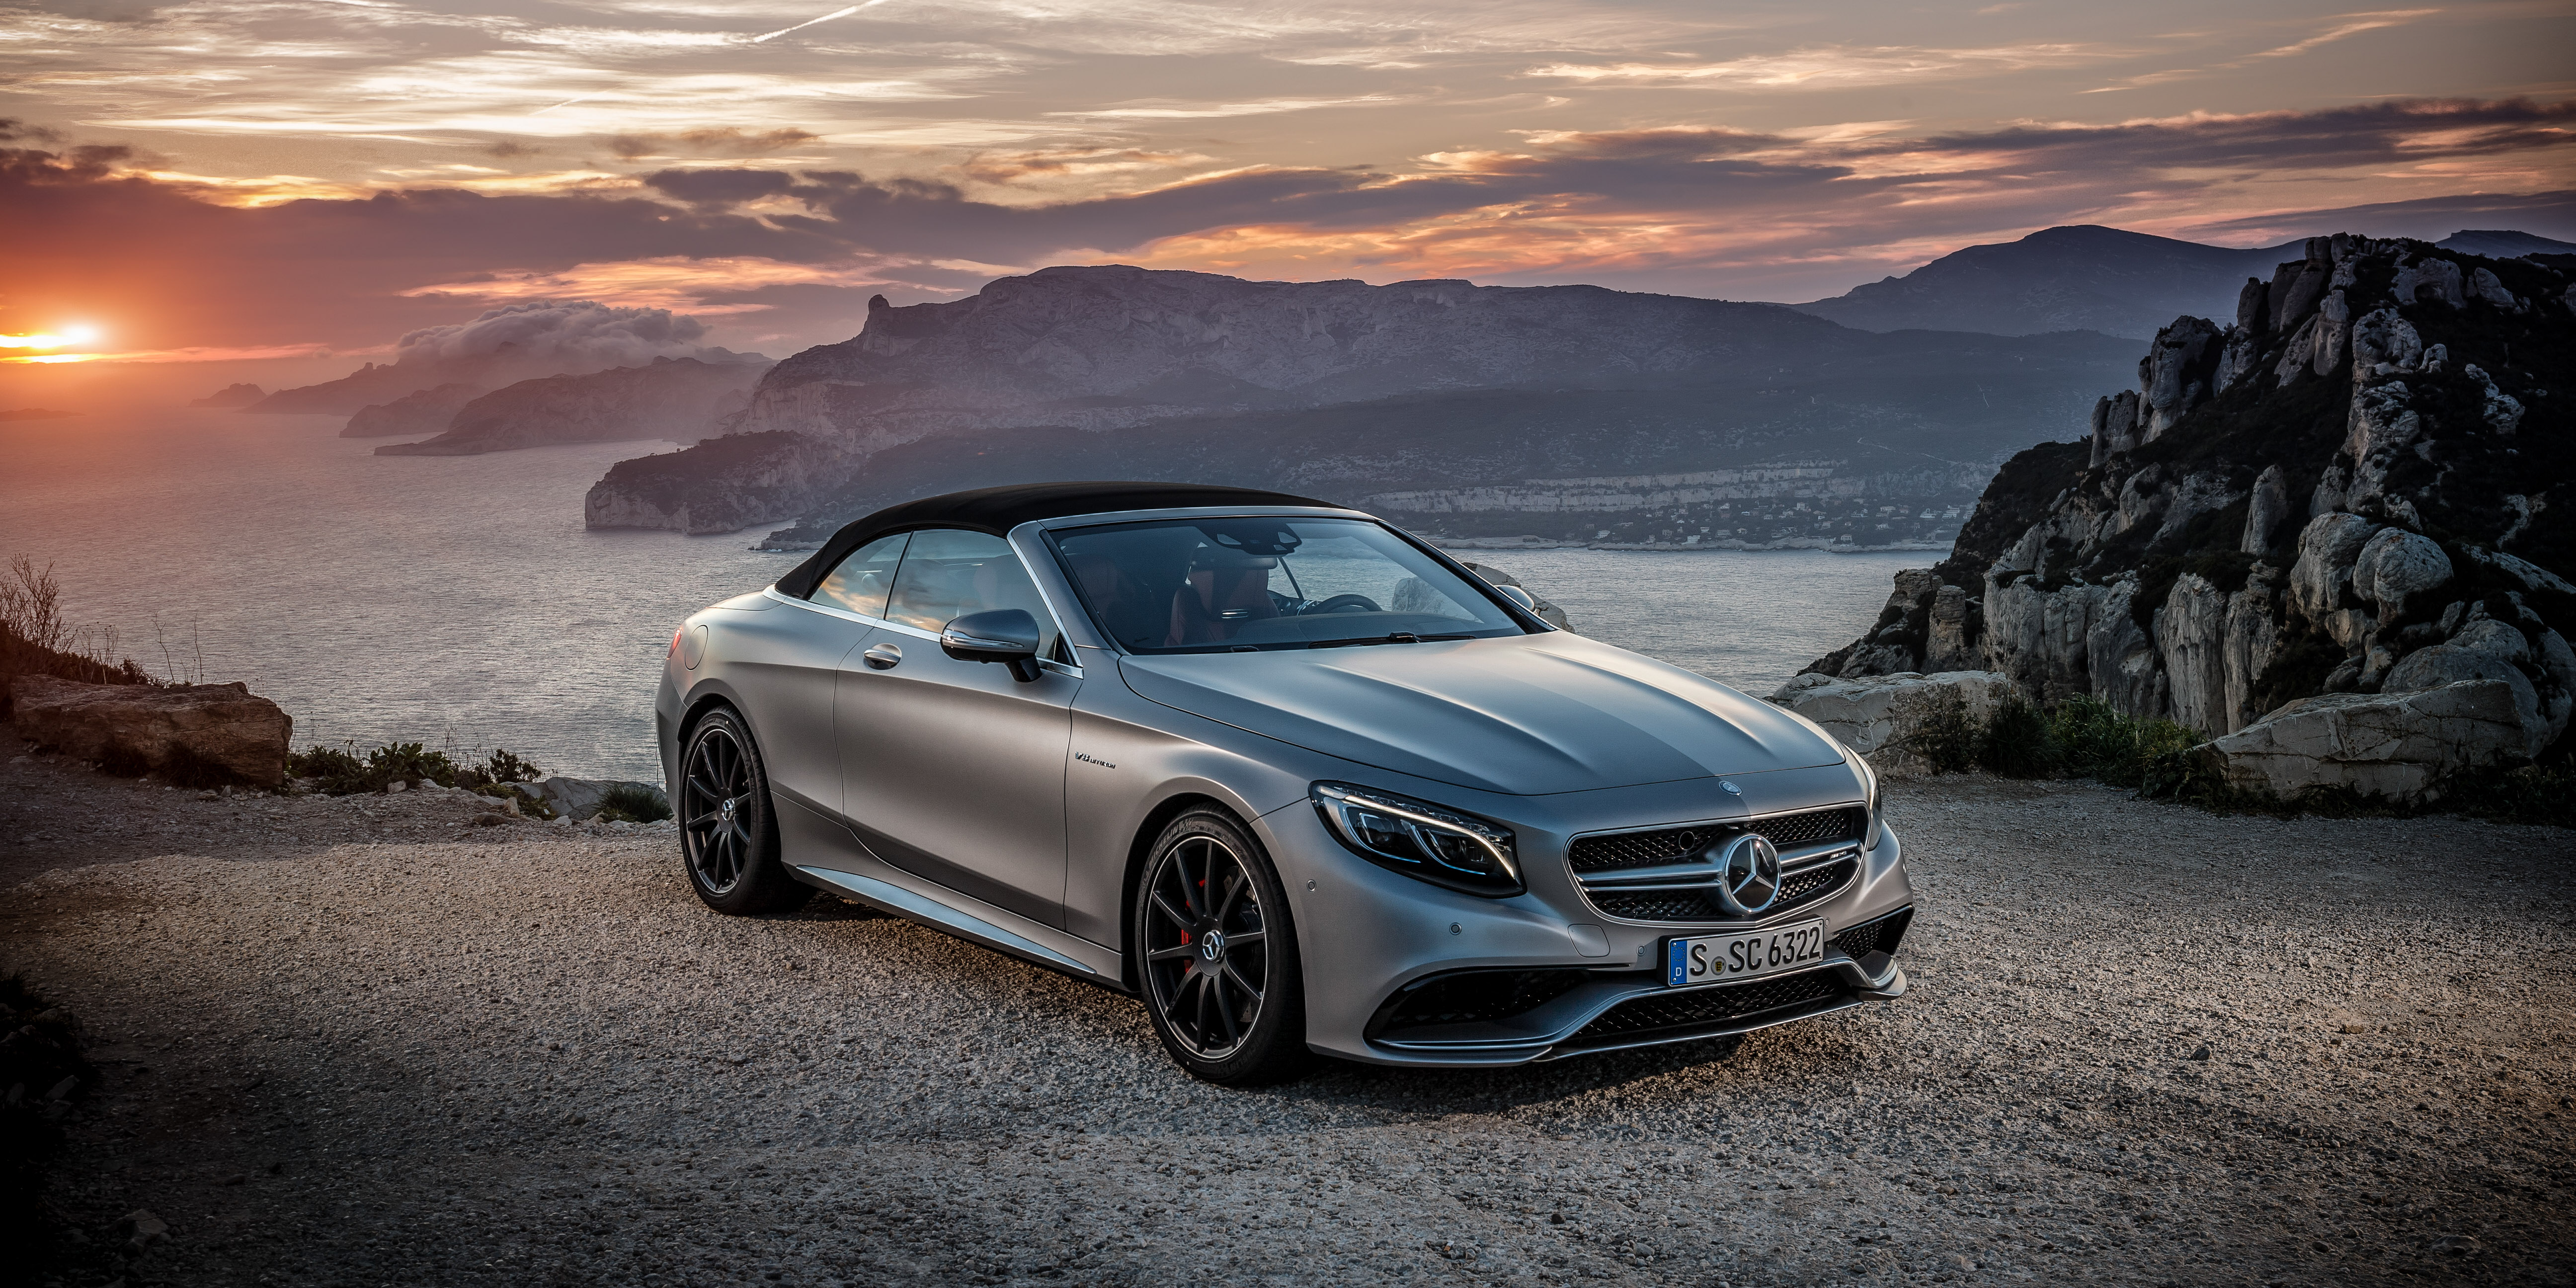 2016 mercedes benz s class cabriolet review s500 and amg